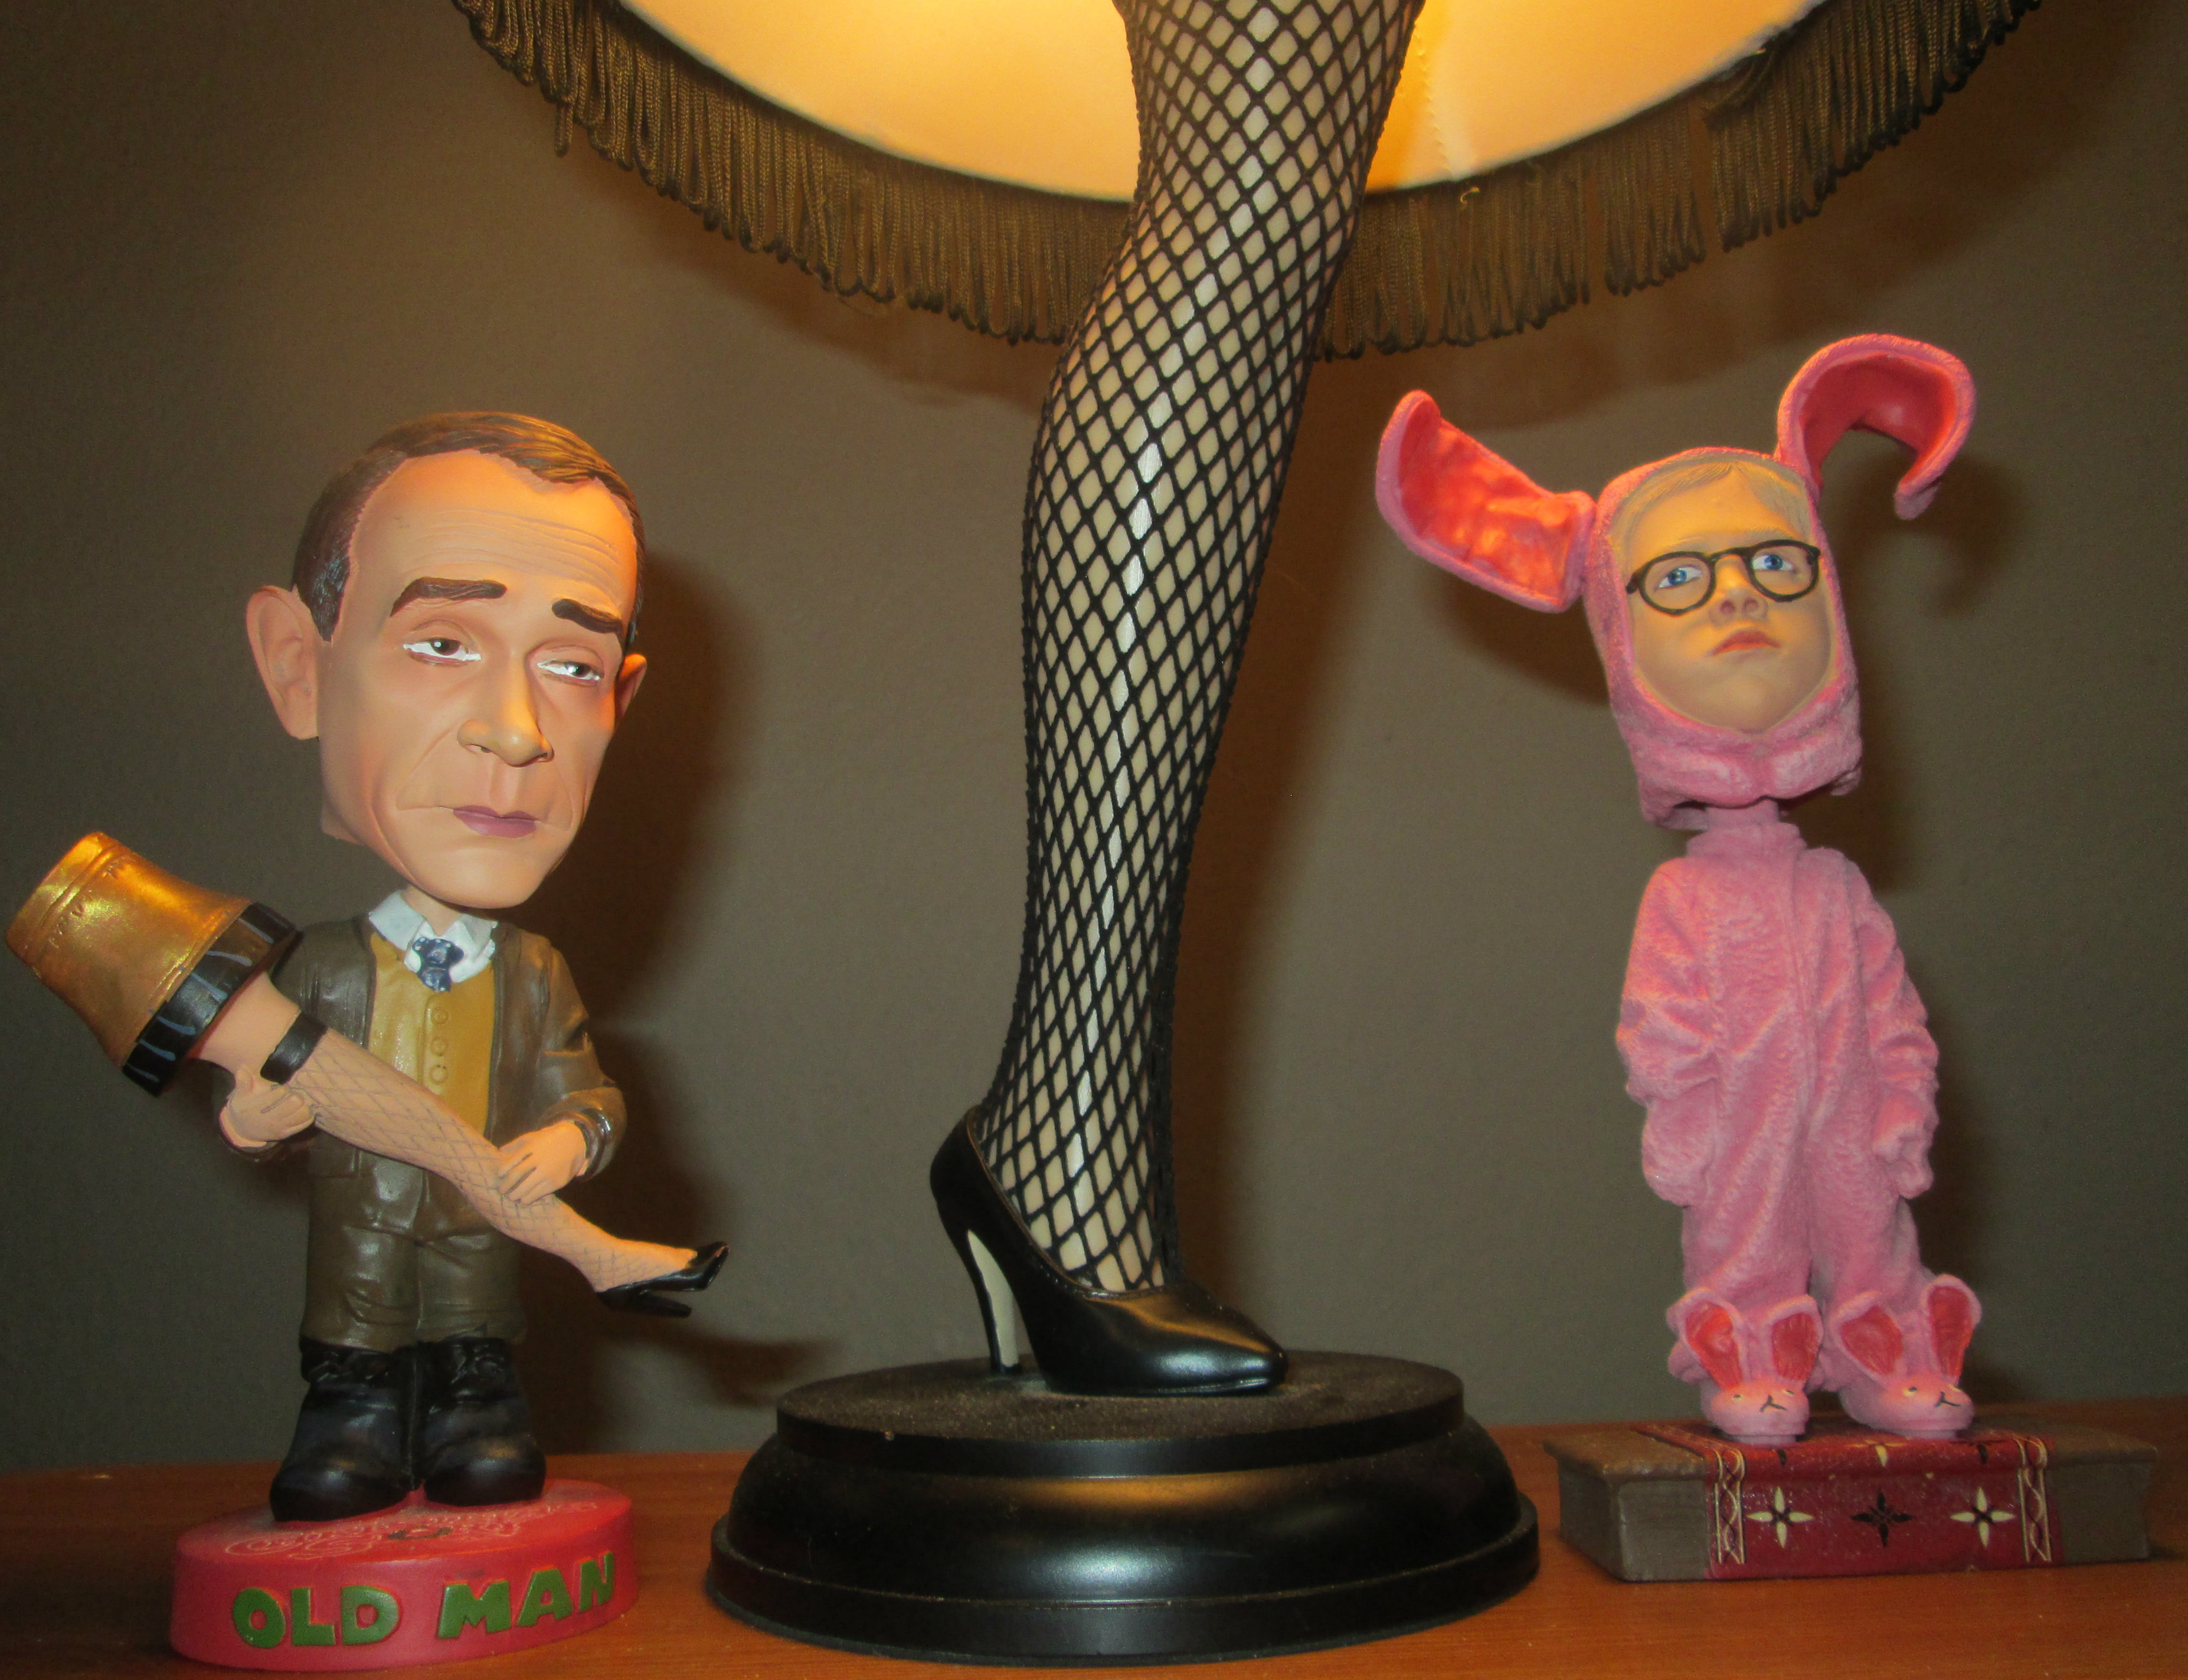 "A Christmas Story"" movie leg lamp and Bobbleheads of the movie's characters ""The Old Man"",  played by Darren McGavin and ""Ralphie"", played by Peter Billingsley sit side by side. Daniel Wilson 